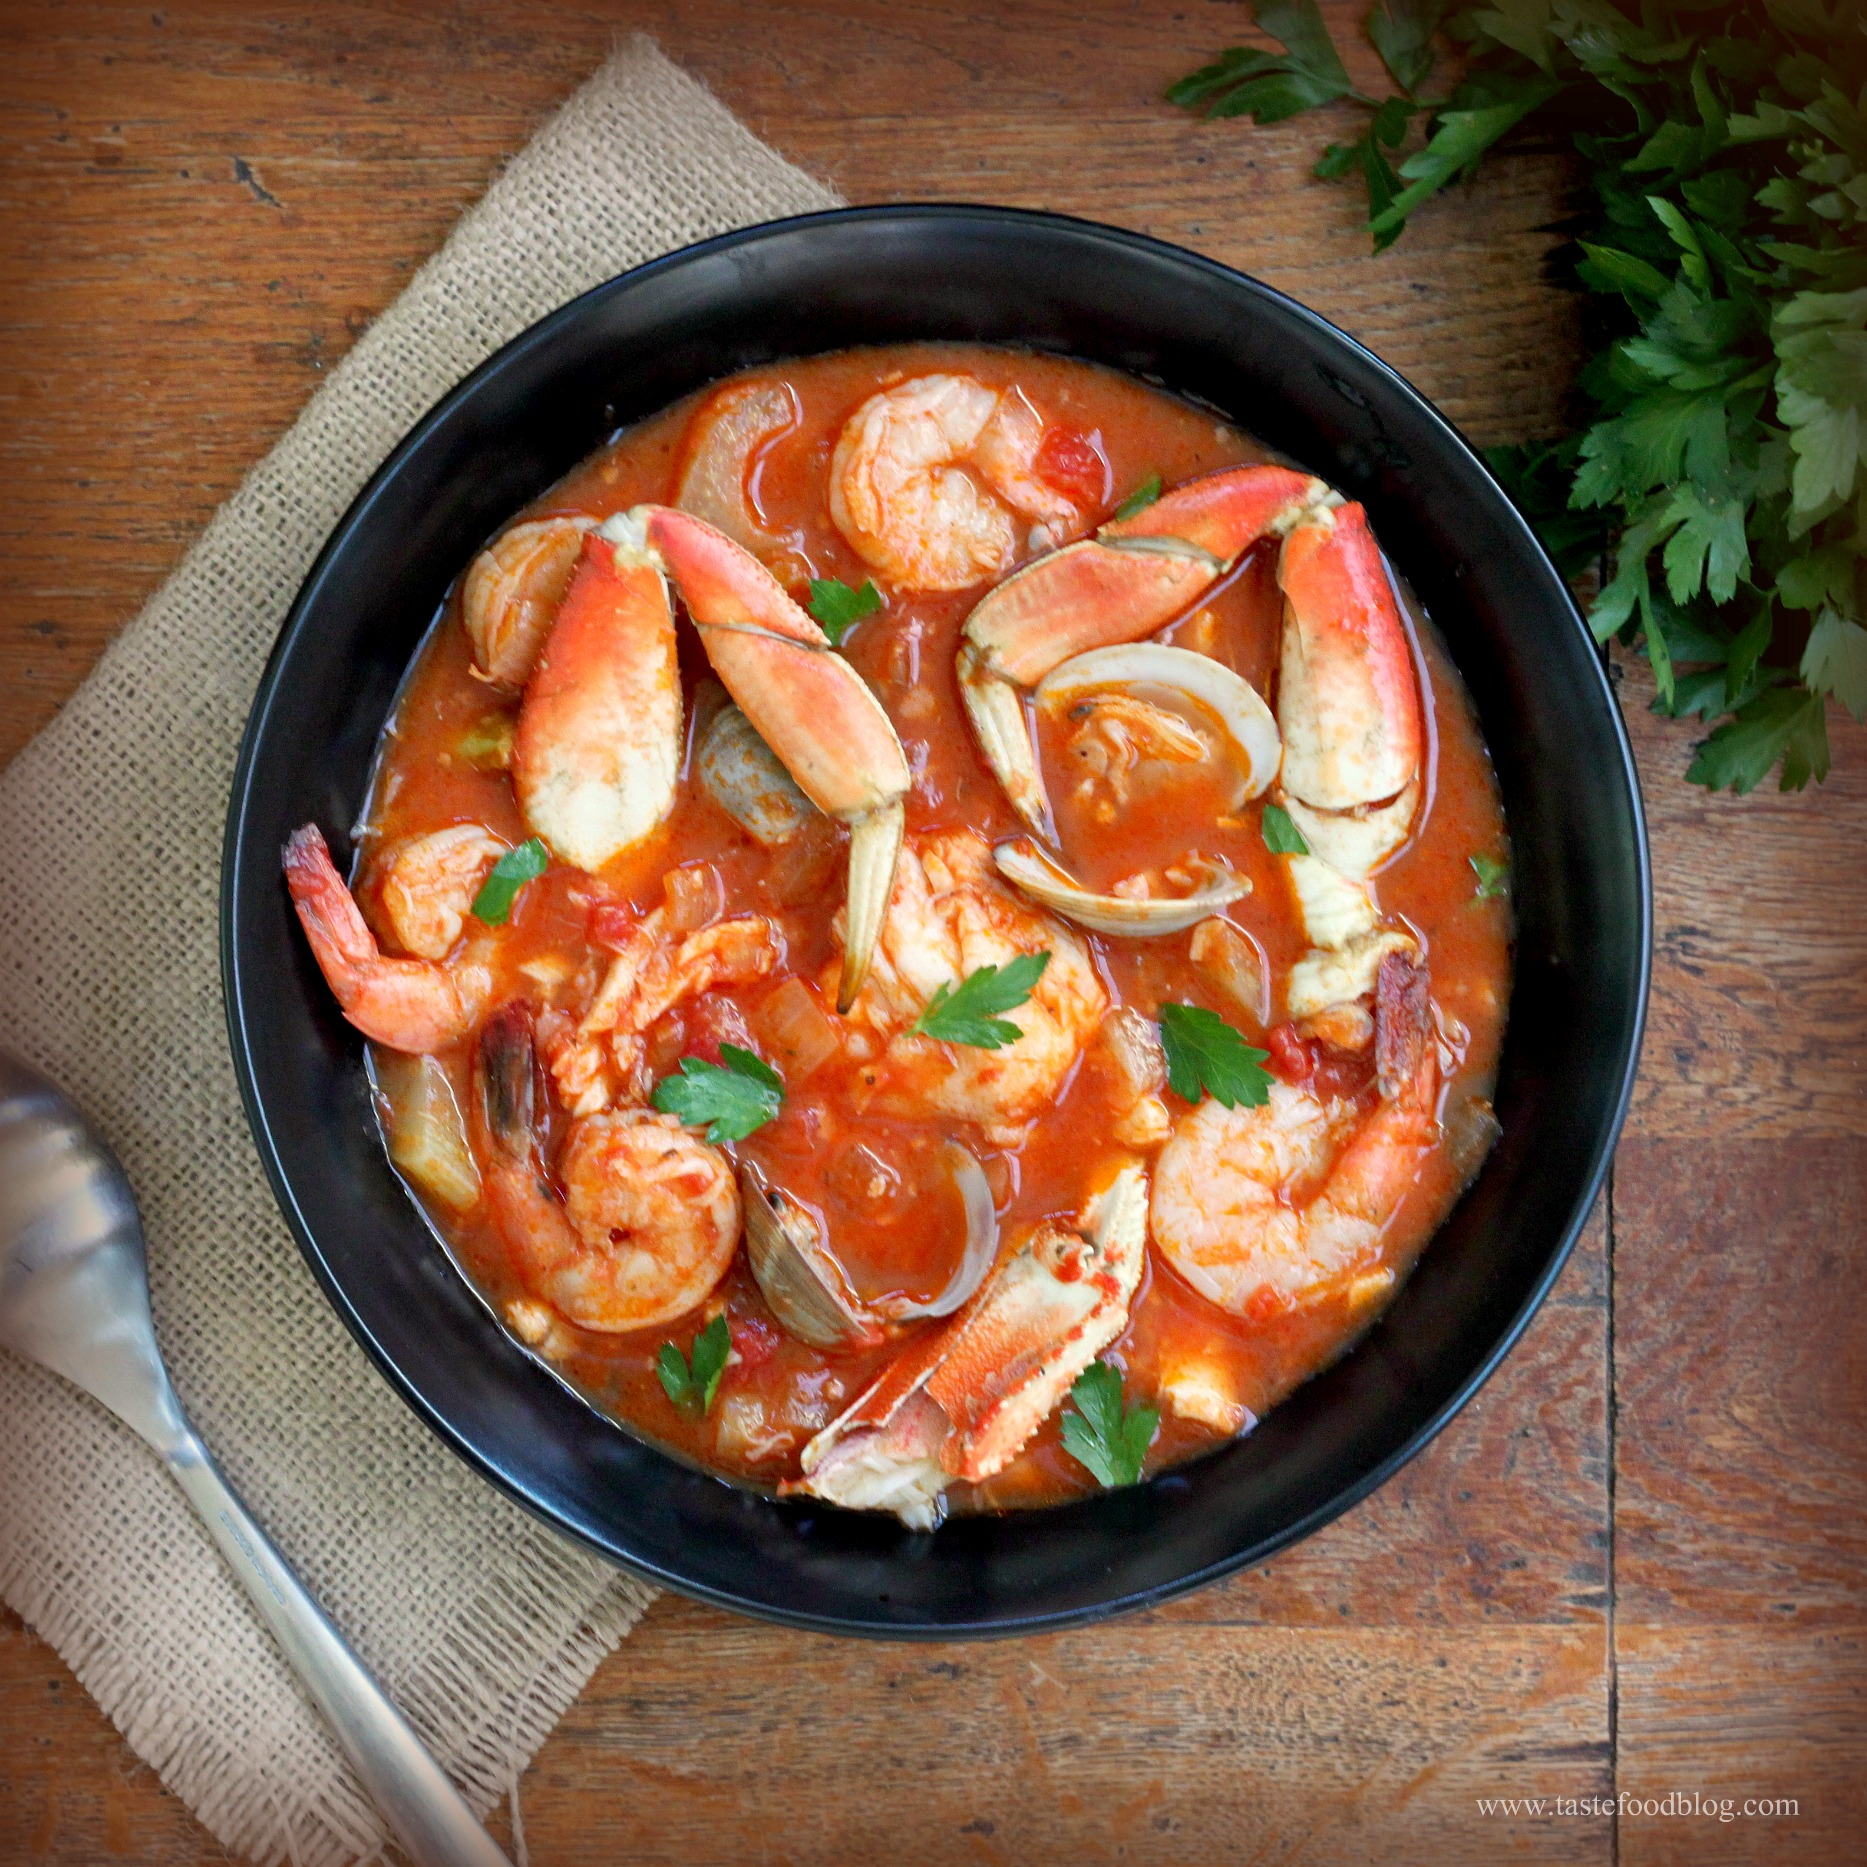 Make This Delicious Cioppino Stew For Tonight's Dinner! crab fish white sea shells shrimp spices herbs easy1